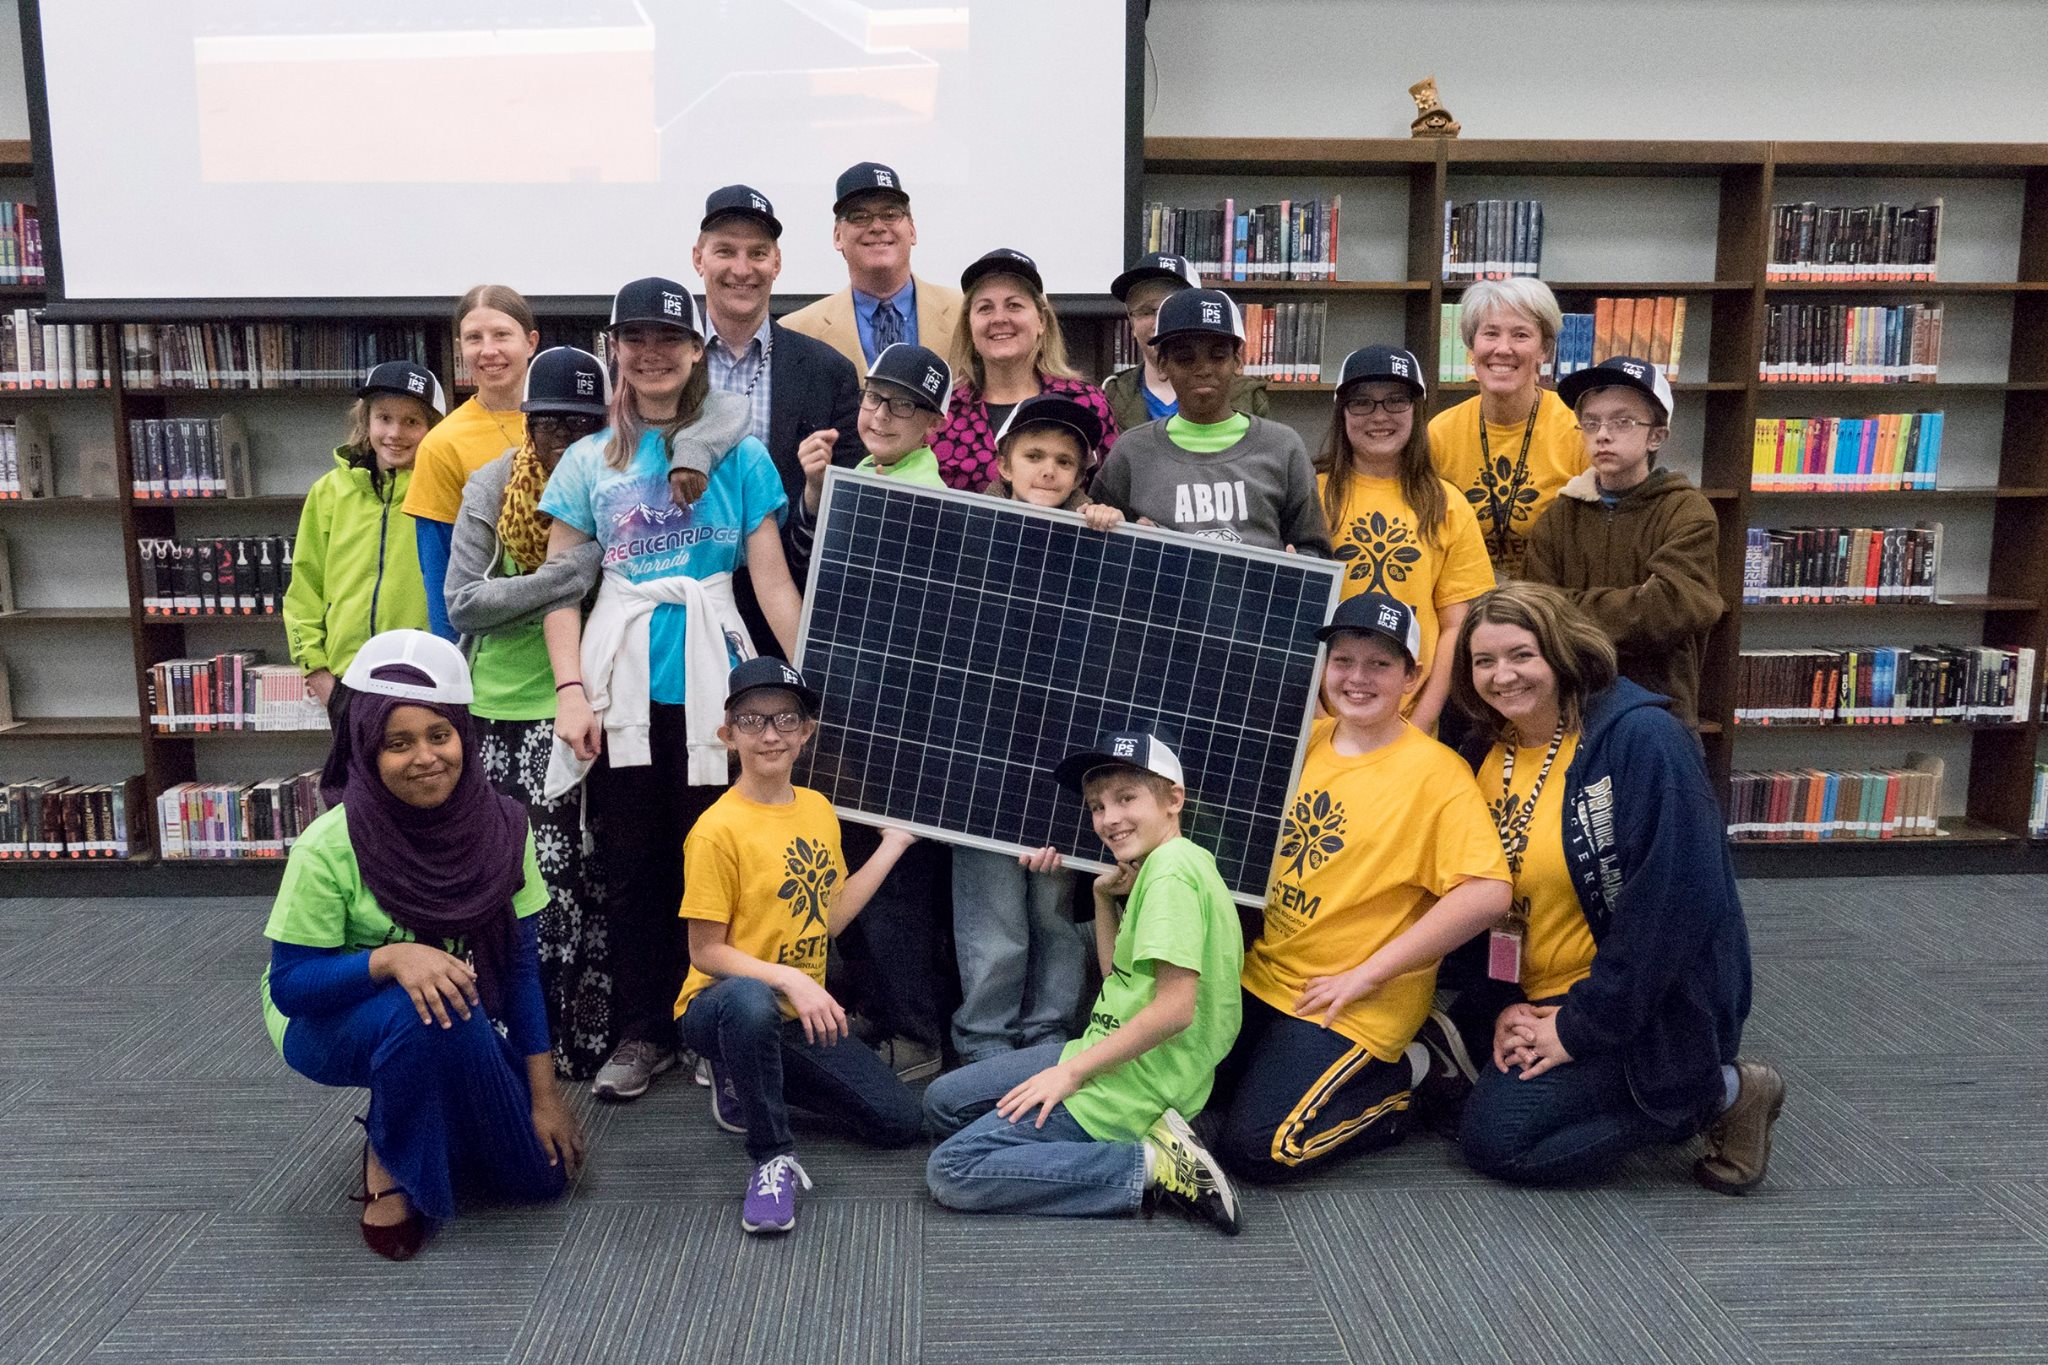 Twin Oaks Middle School and IPS - Solar Panel, Solar for Schools, Students and Solar